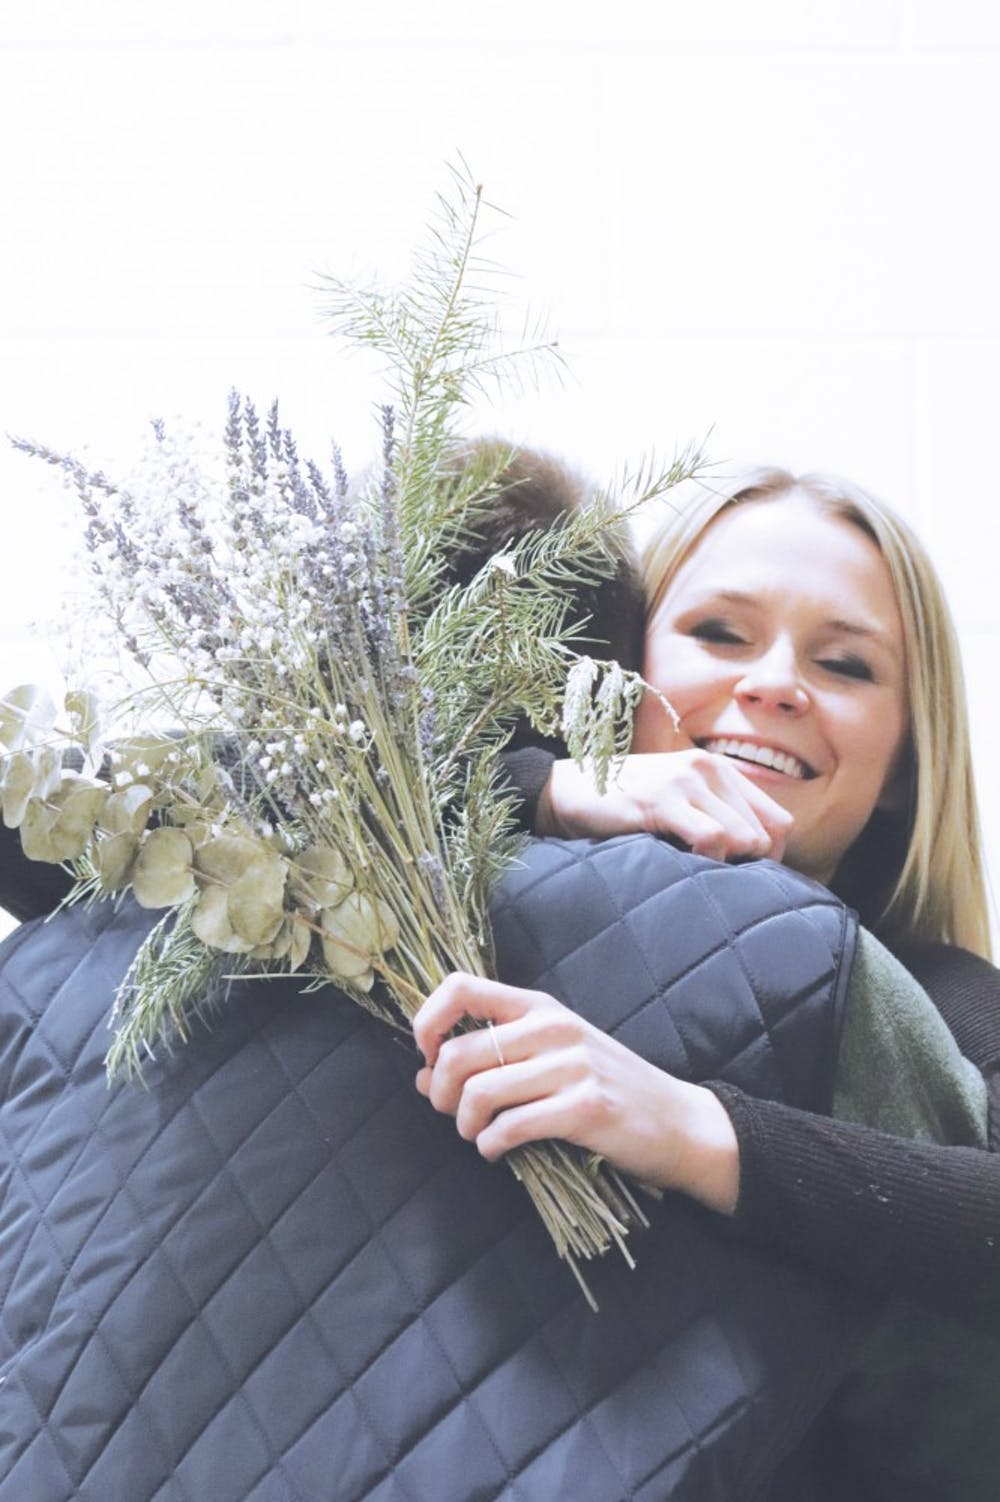 Our View: Couples celebrate love